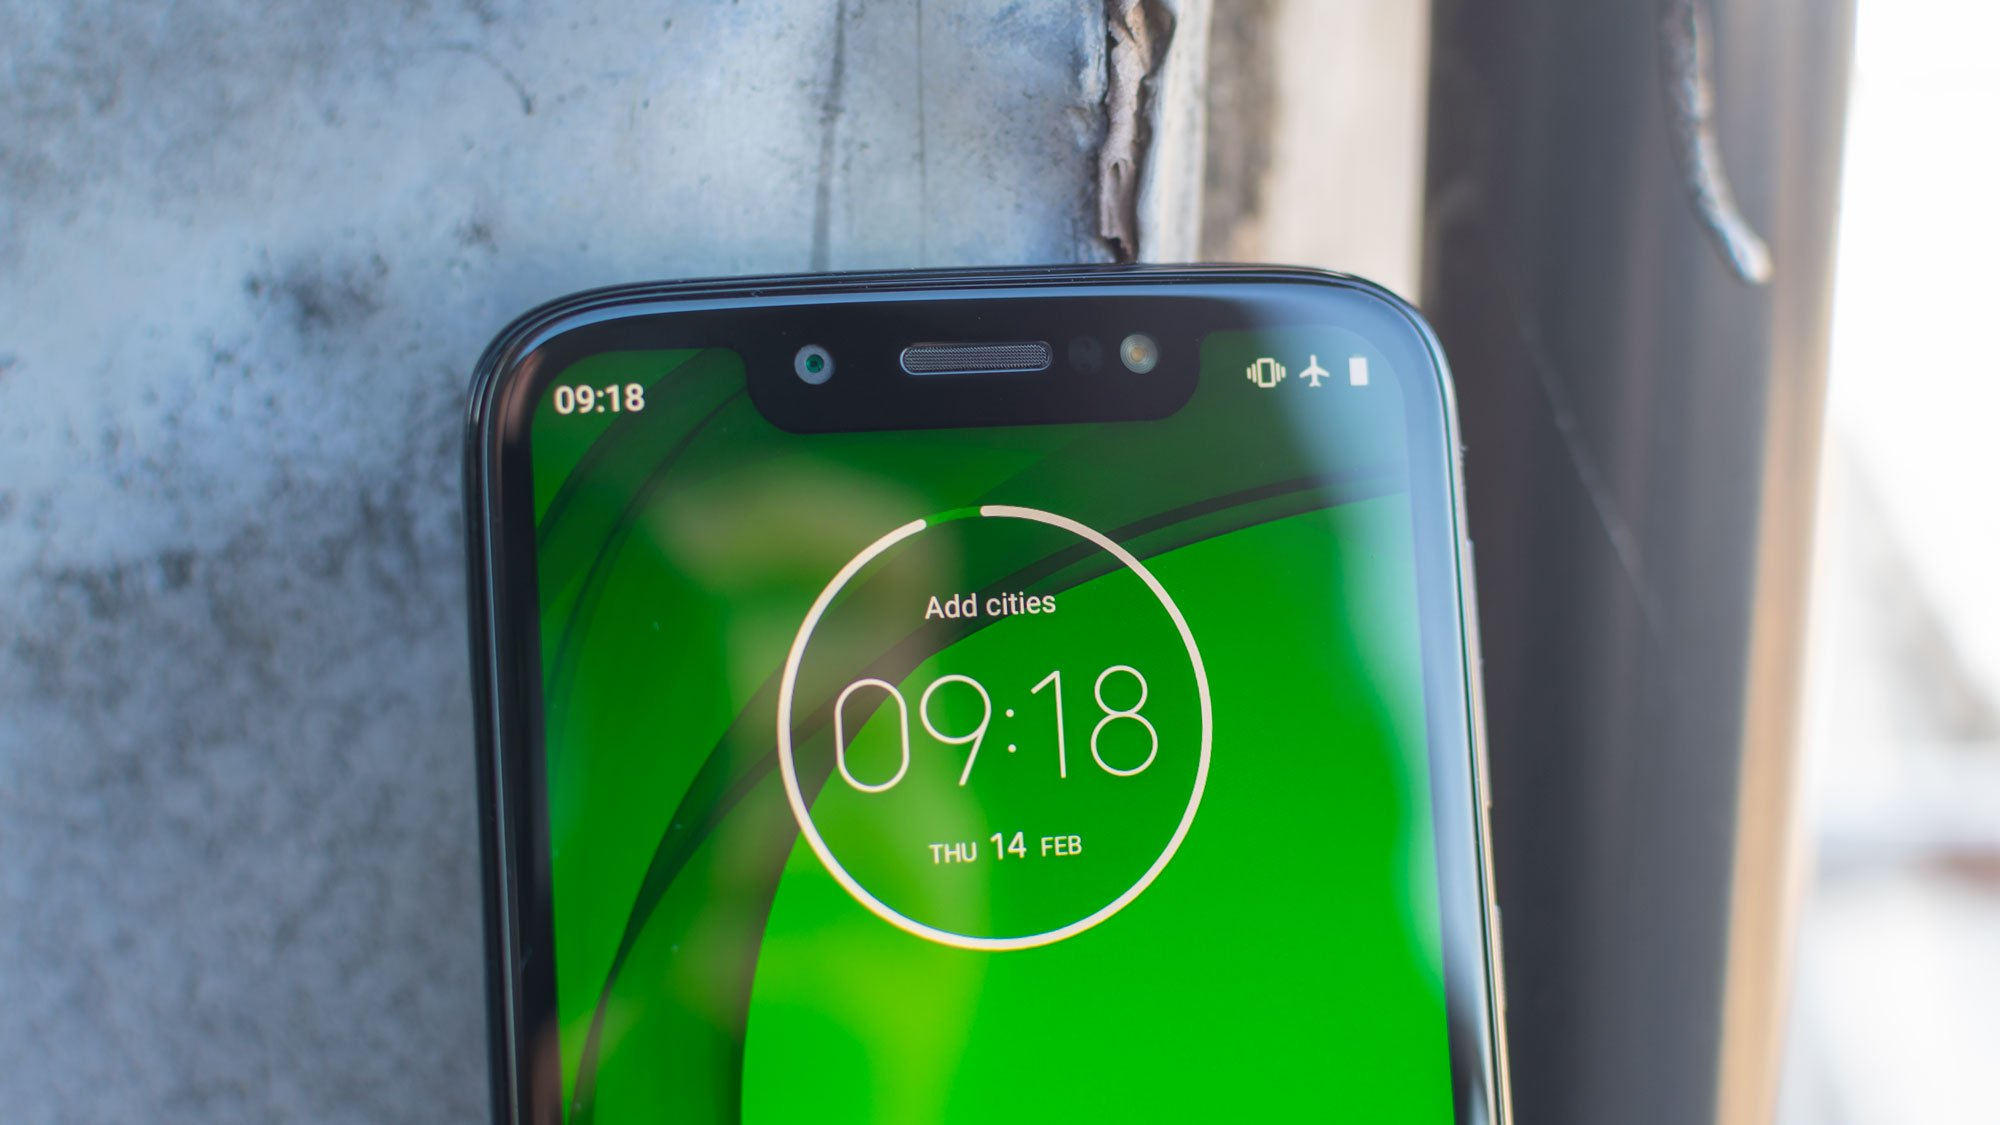 ae74ae6c9d Motorola Moto G7 Play review: Motorola's cheap and (almost) cheerful budget  smartphone | Expert Reviews